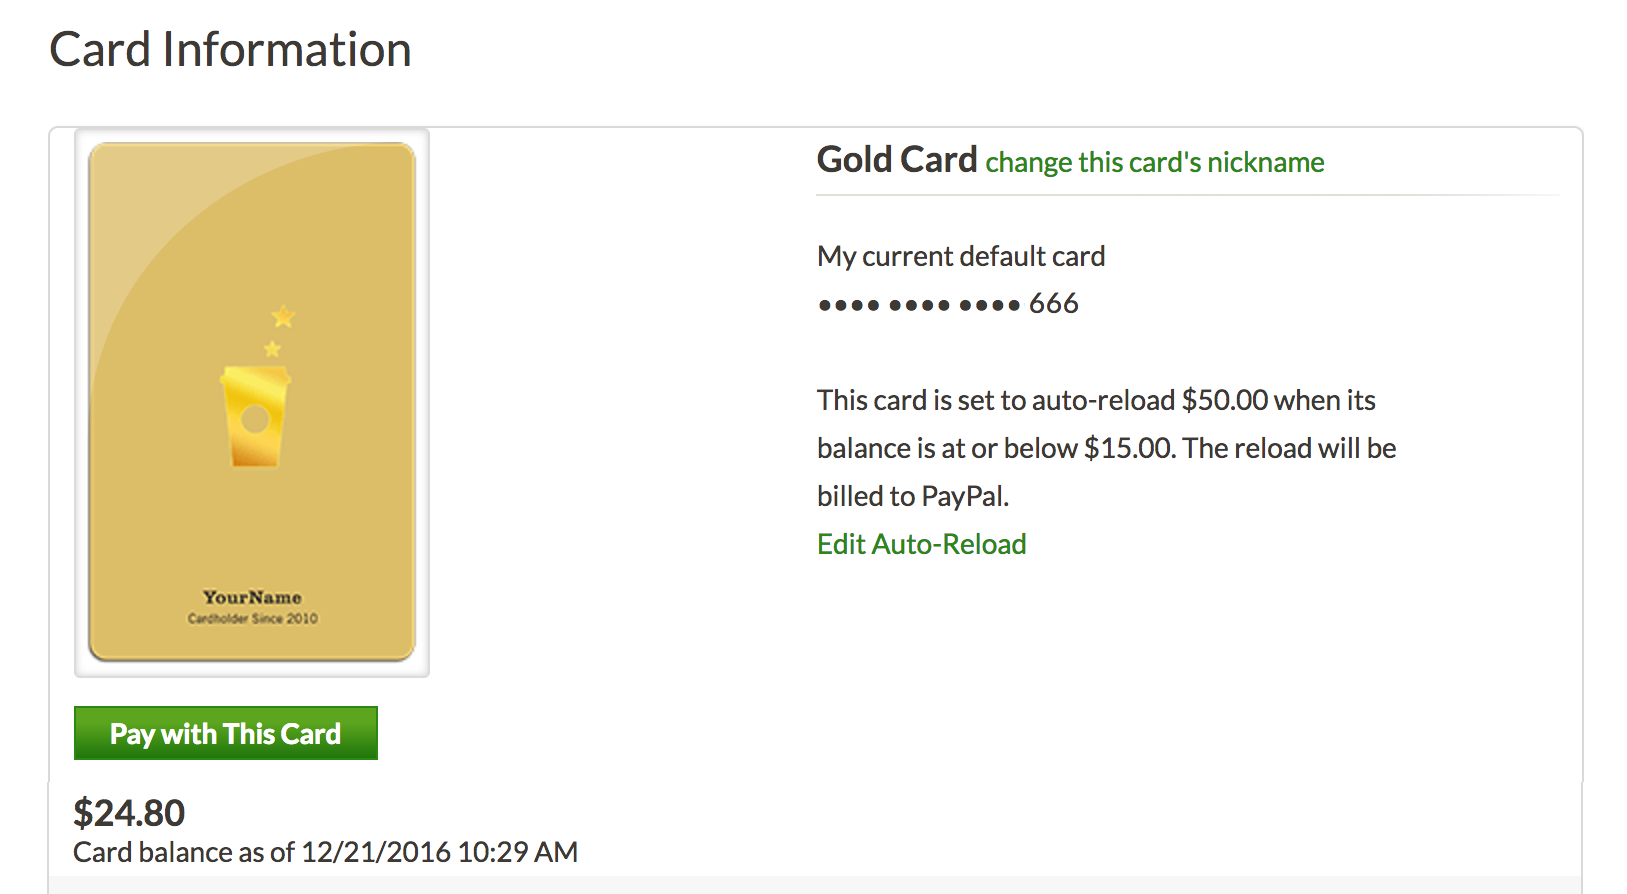 starbucks gold card, auto reload enabled